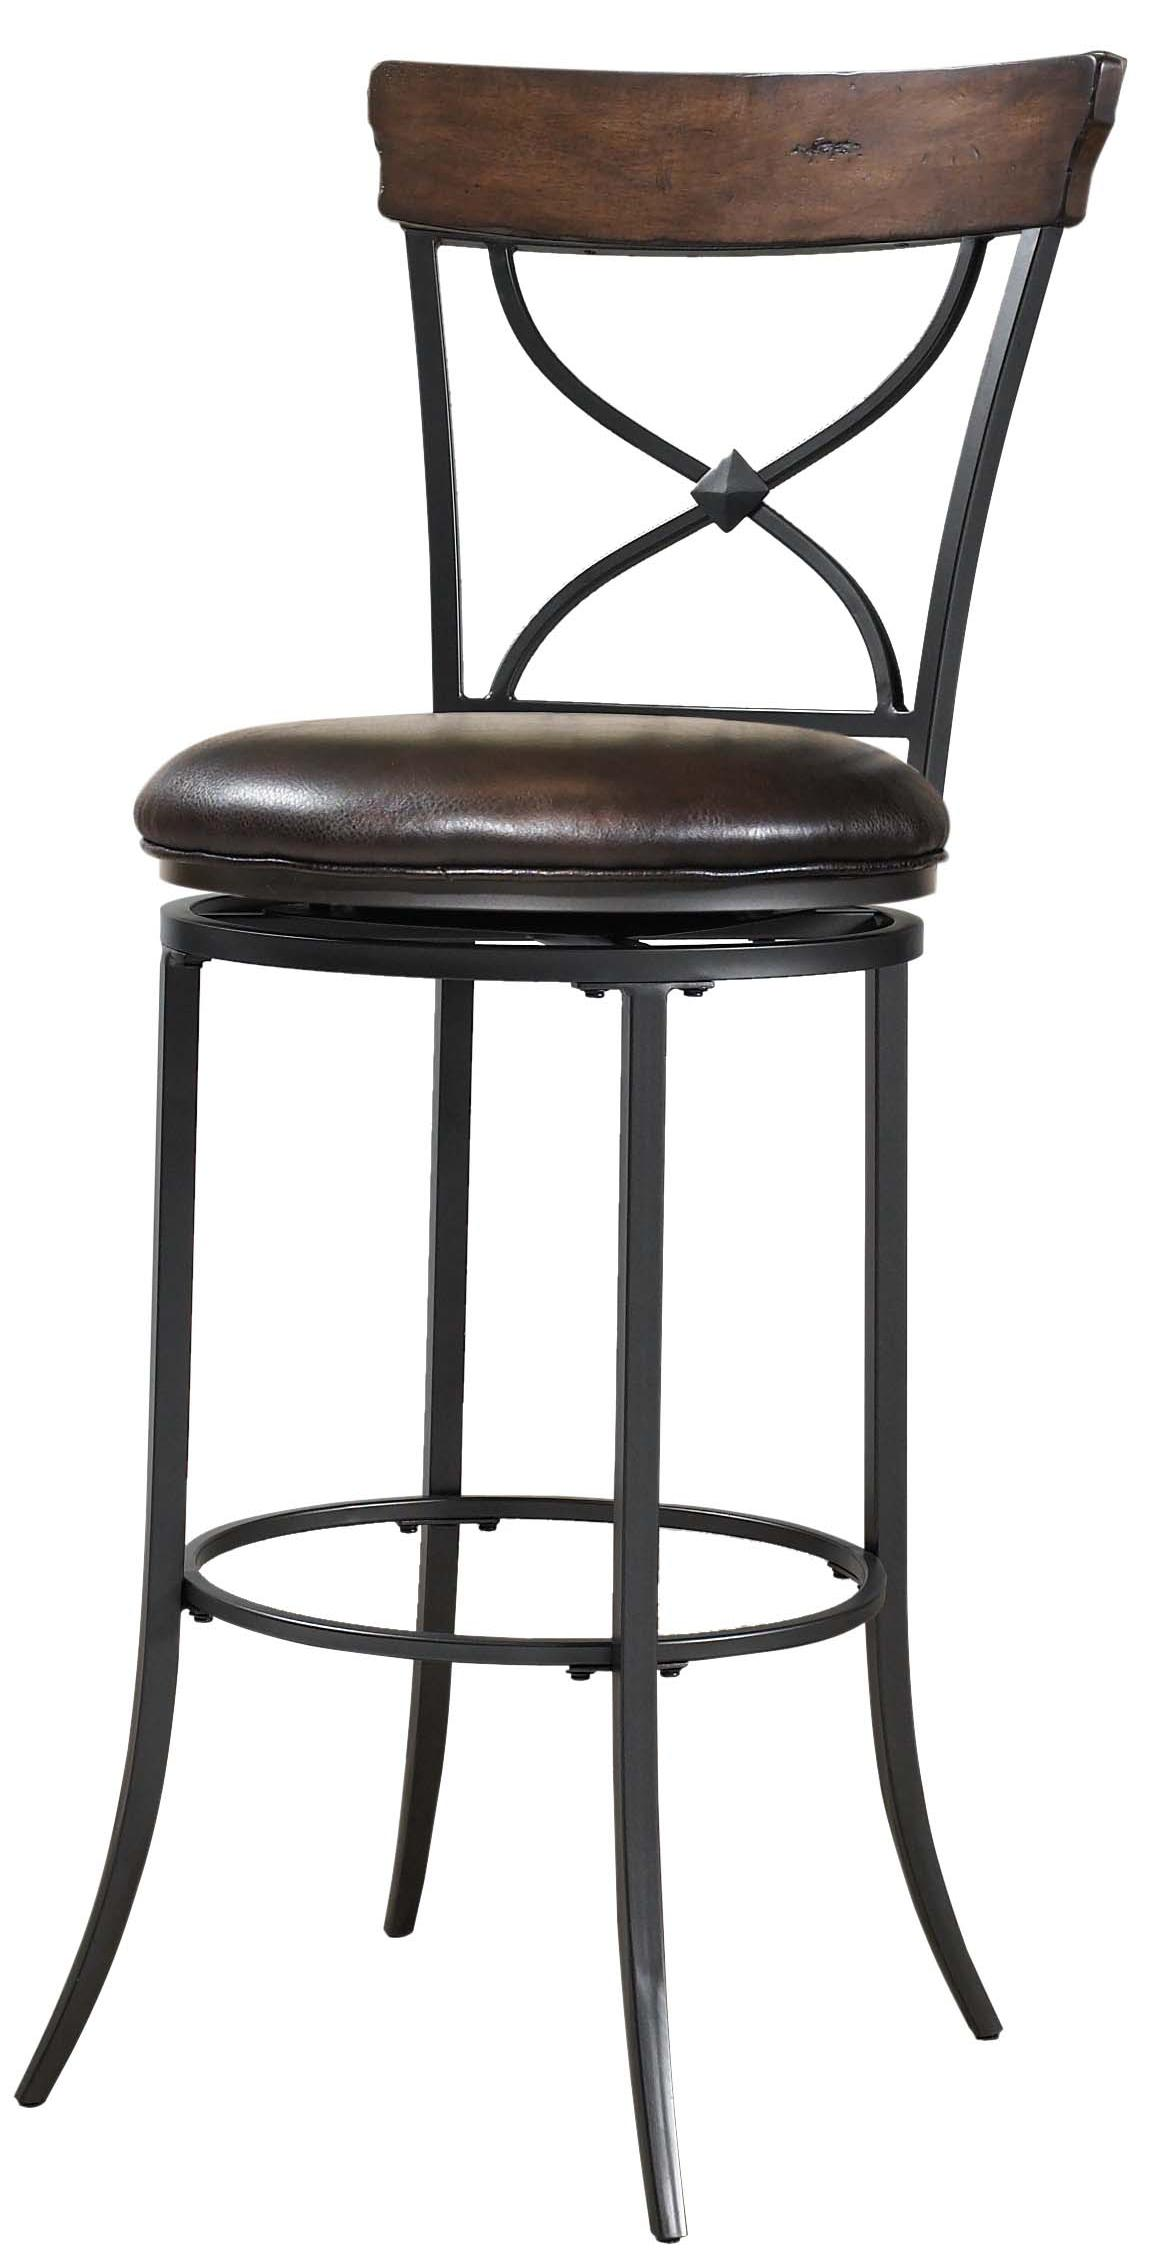 Hillsdale Metal Stools Cameron Swivel X-Back Bar Stool  - Item Number: 4671-830